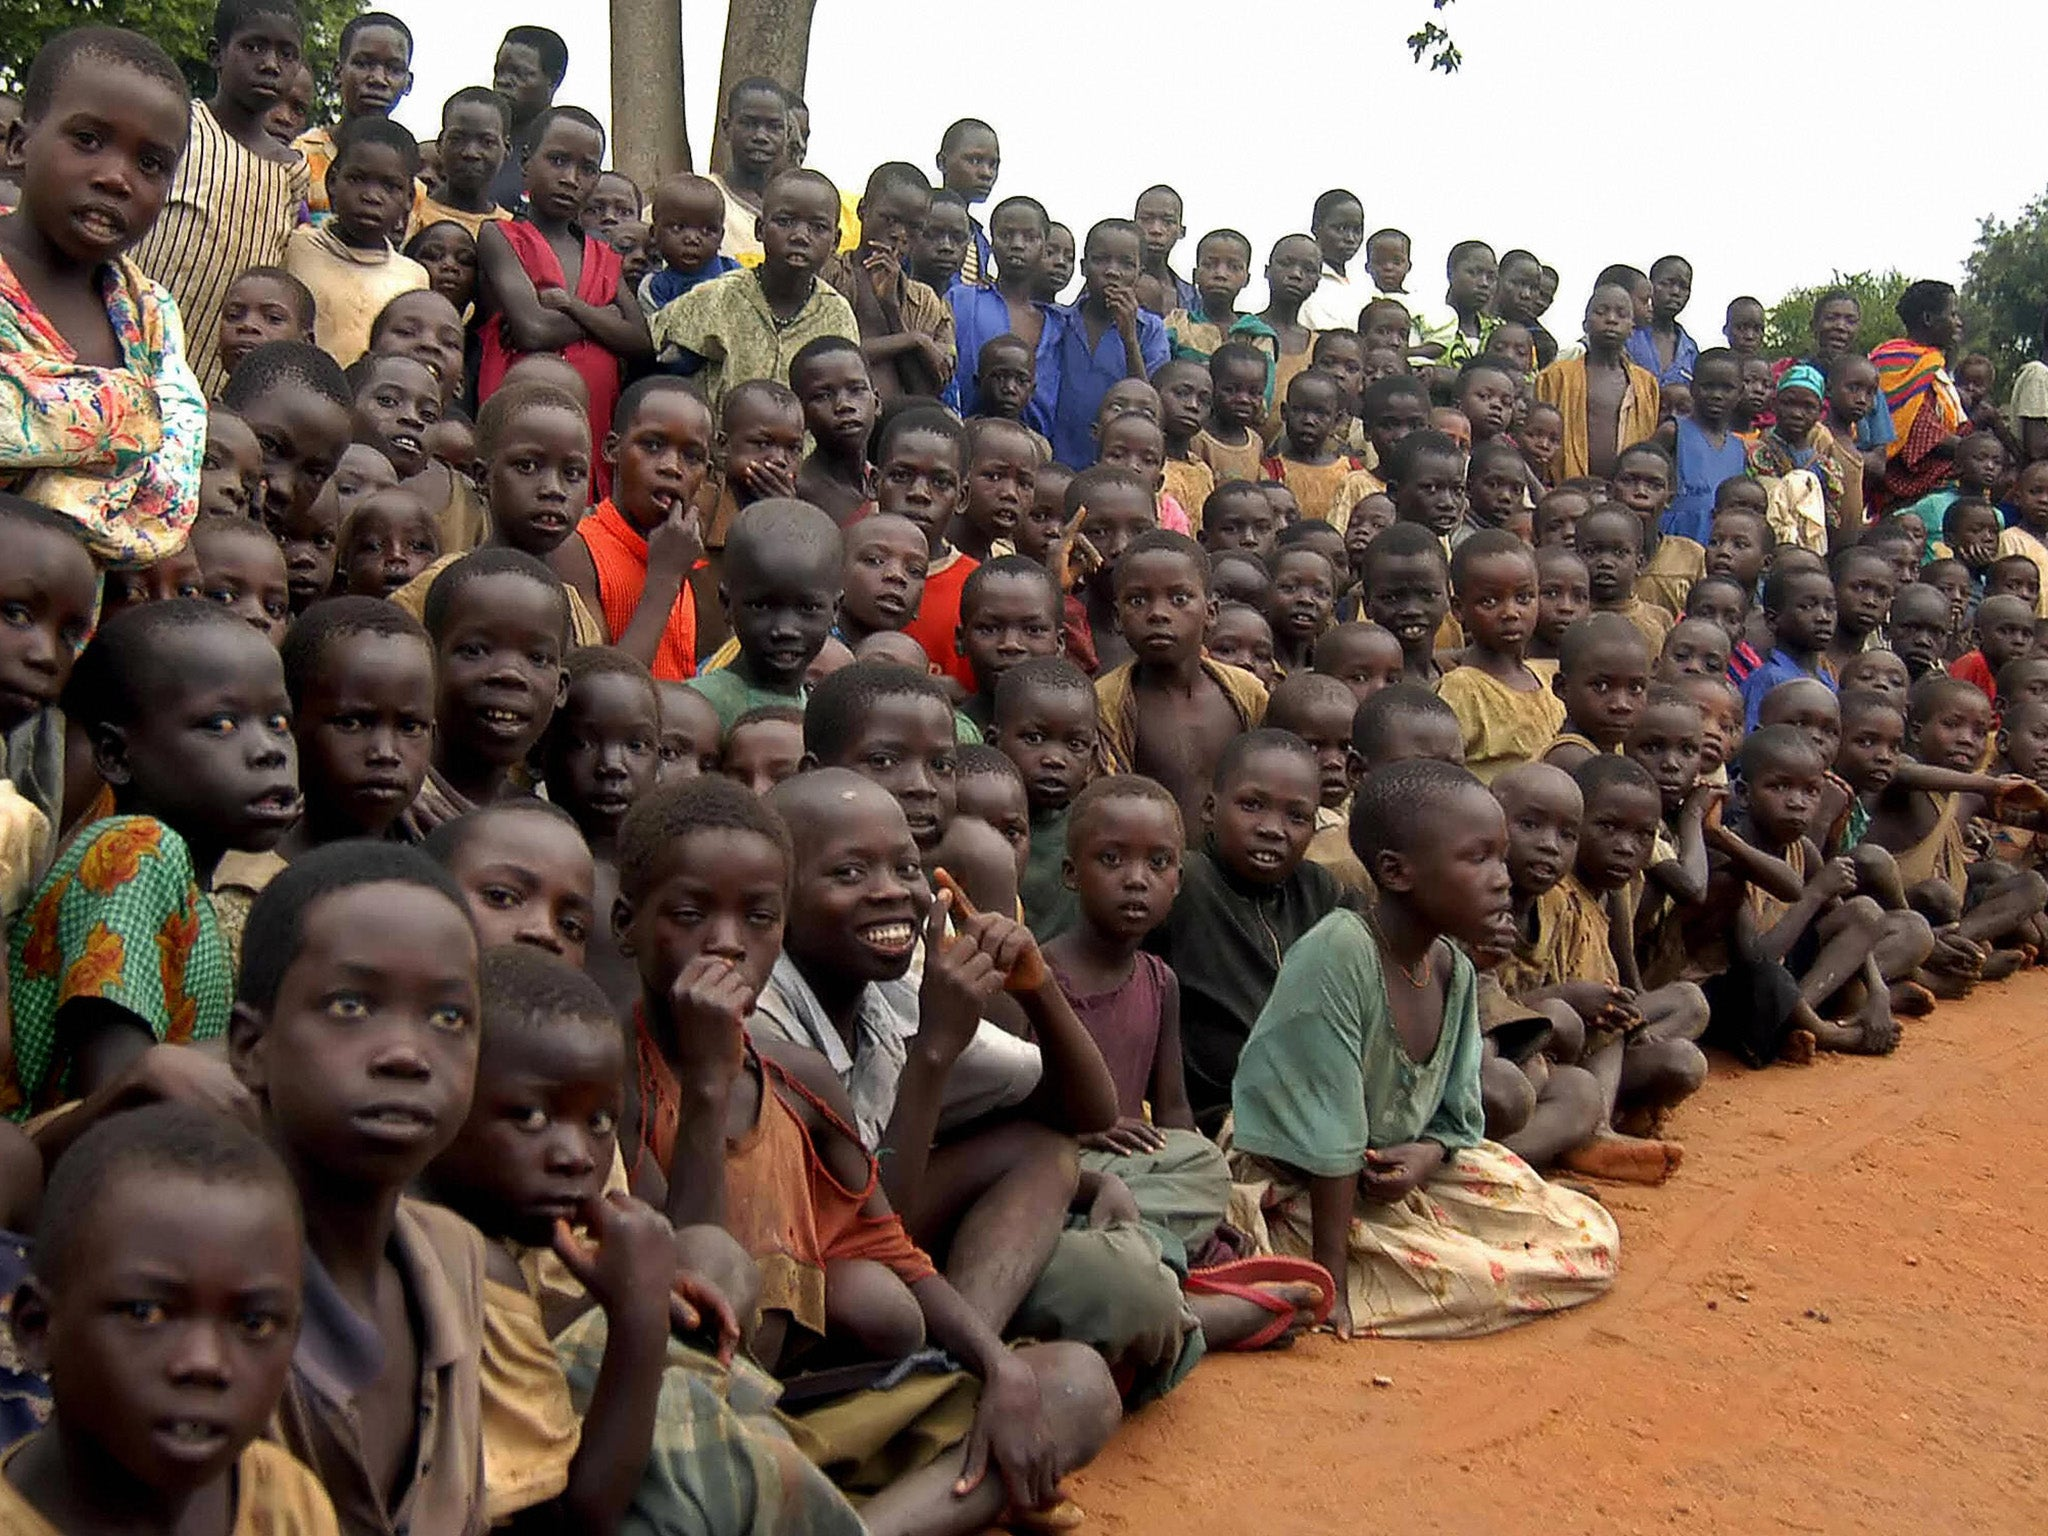 AWoman From Uganda Who Gave Birth to44Children Reveals What Her Life IsLike